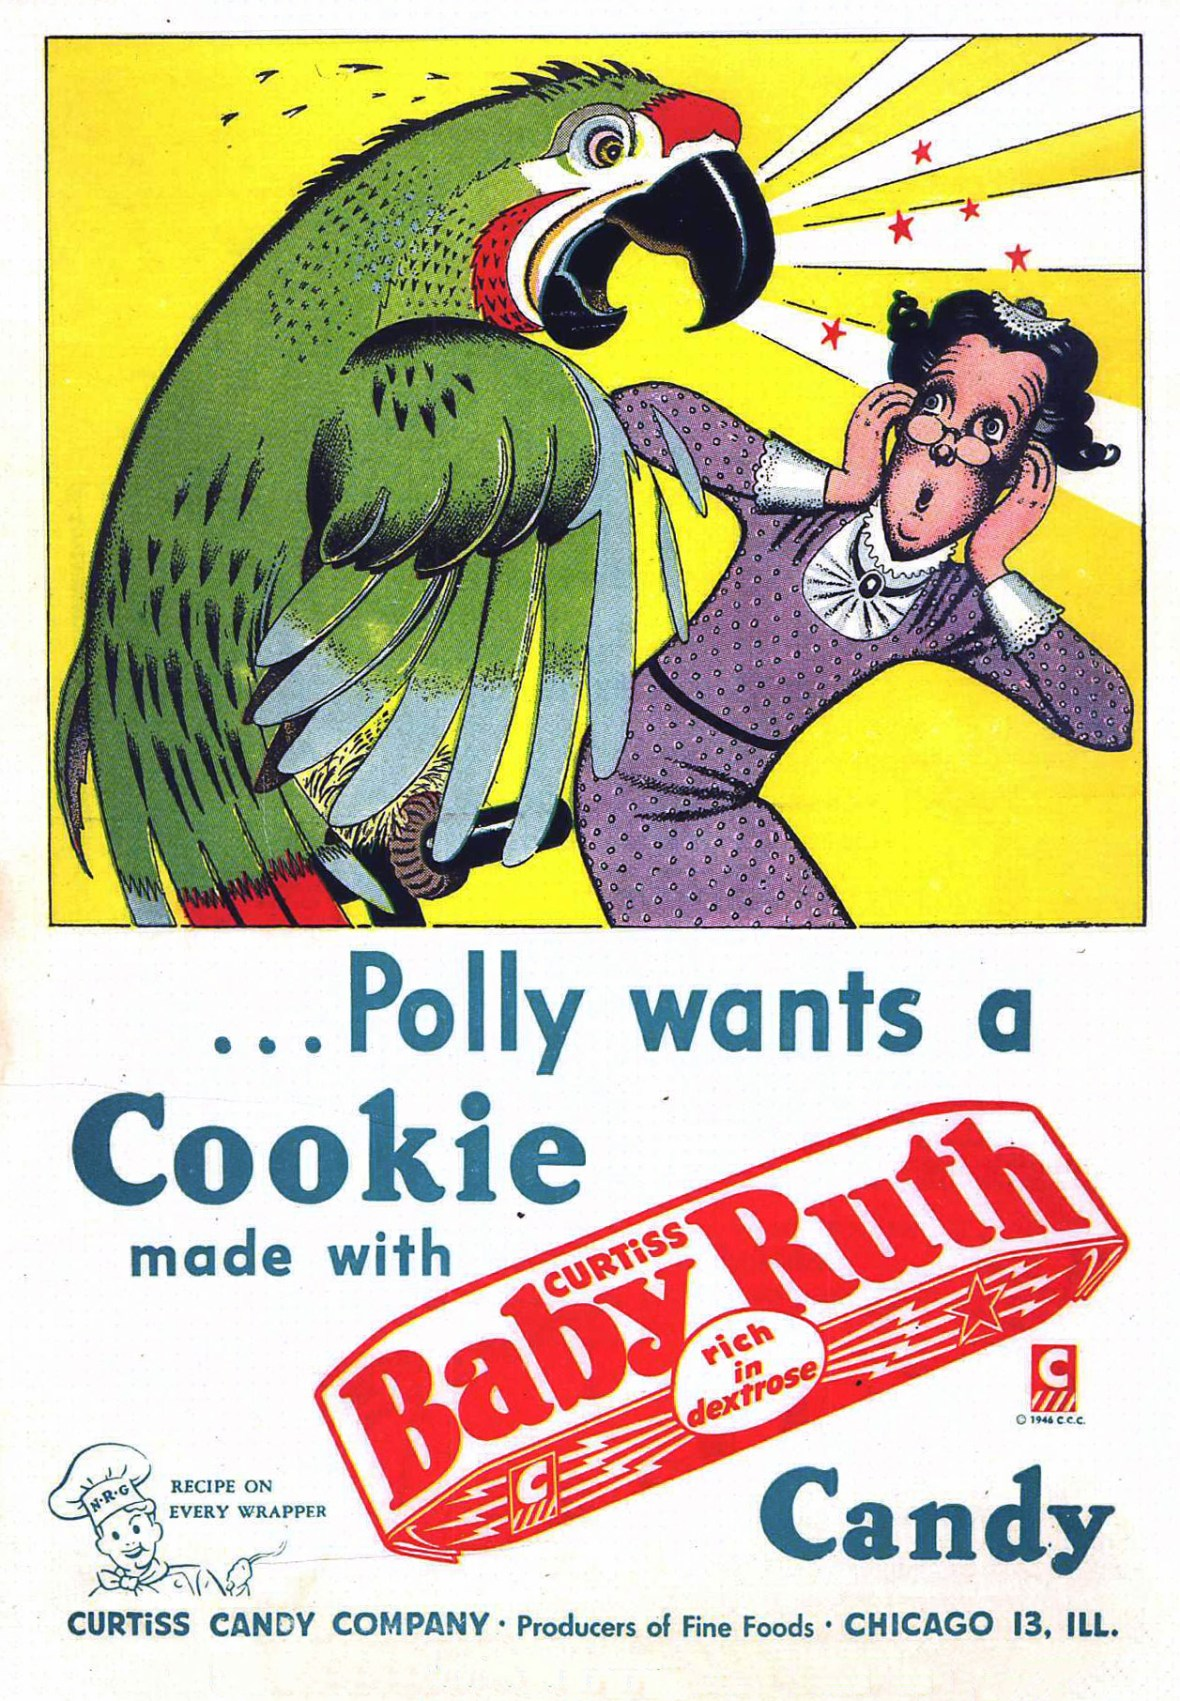 Curtiss Candy Company/Baby Ruth - 1946